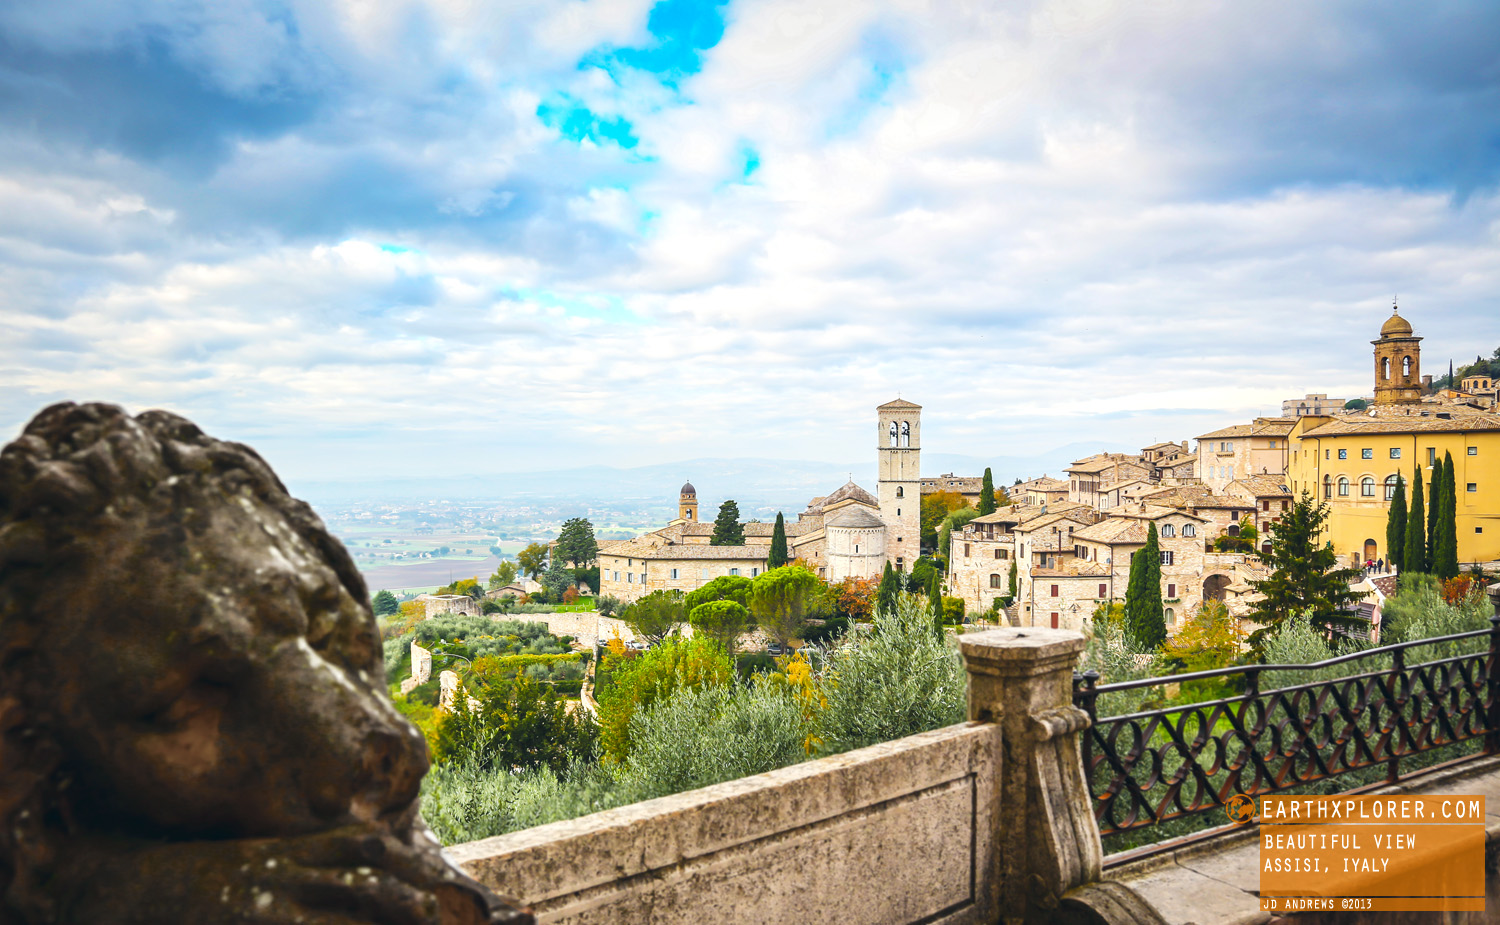 Assisi is the birthplace of St. Francis, he founded the Franciscan religious order.